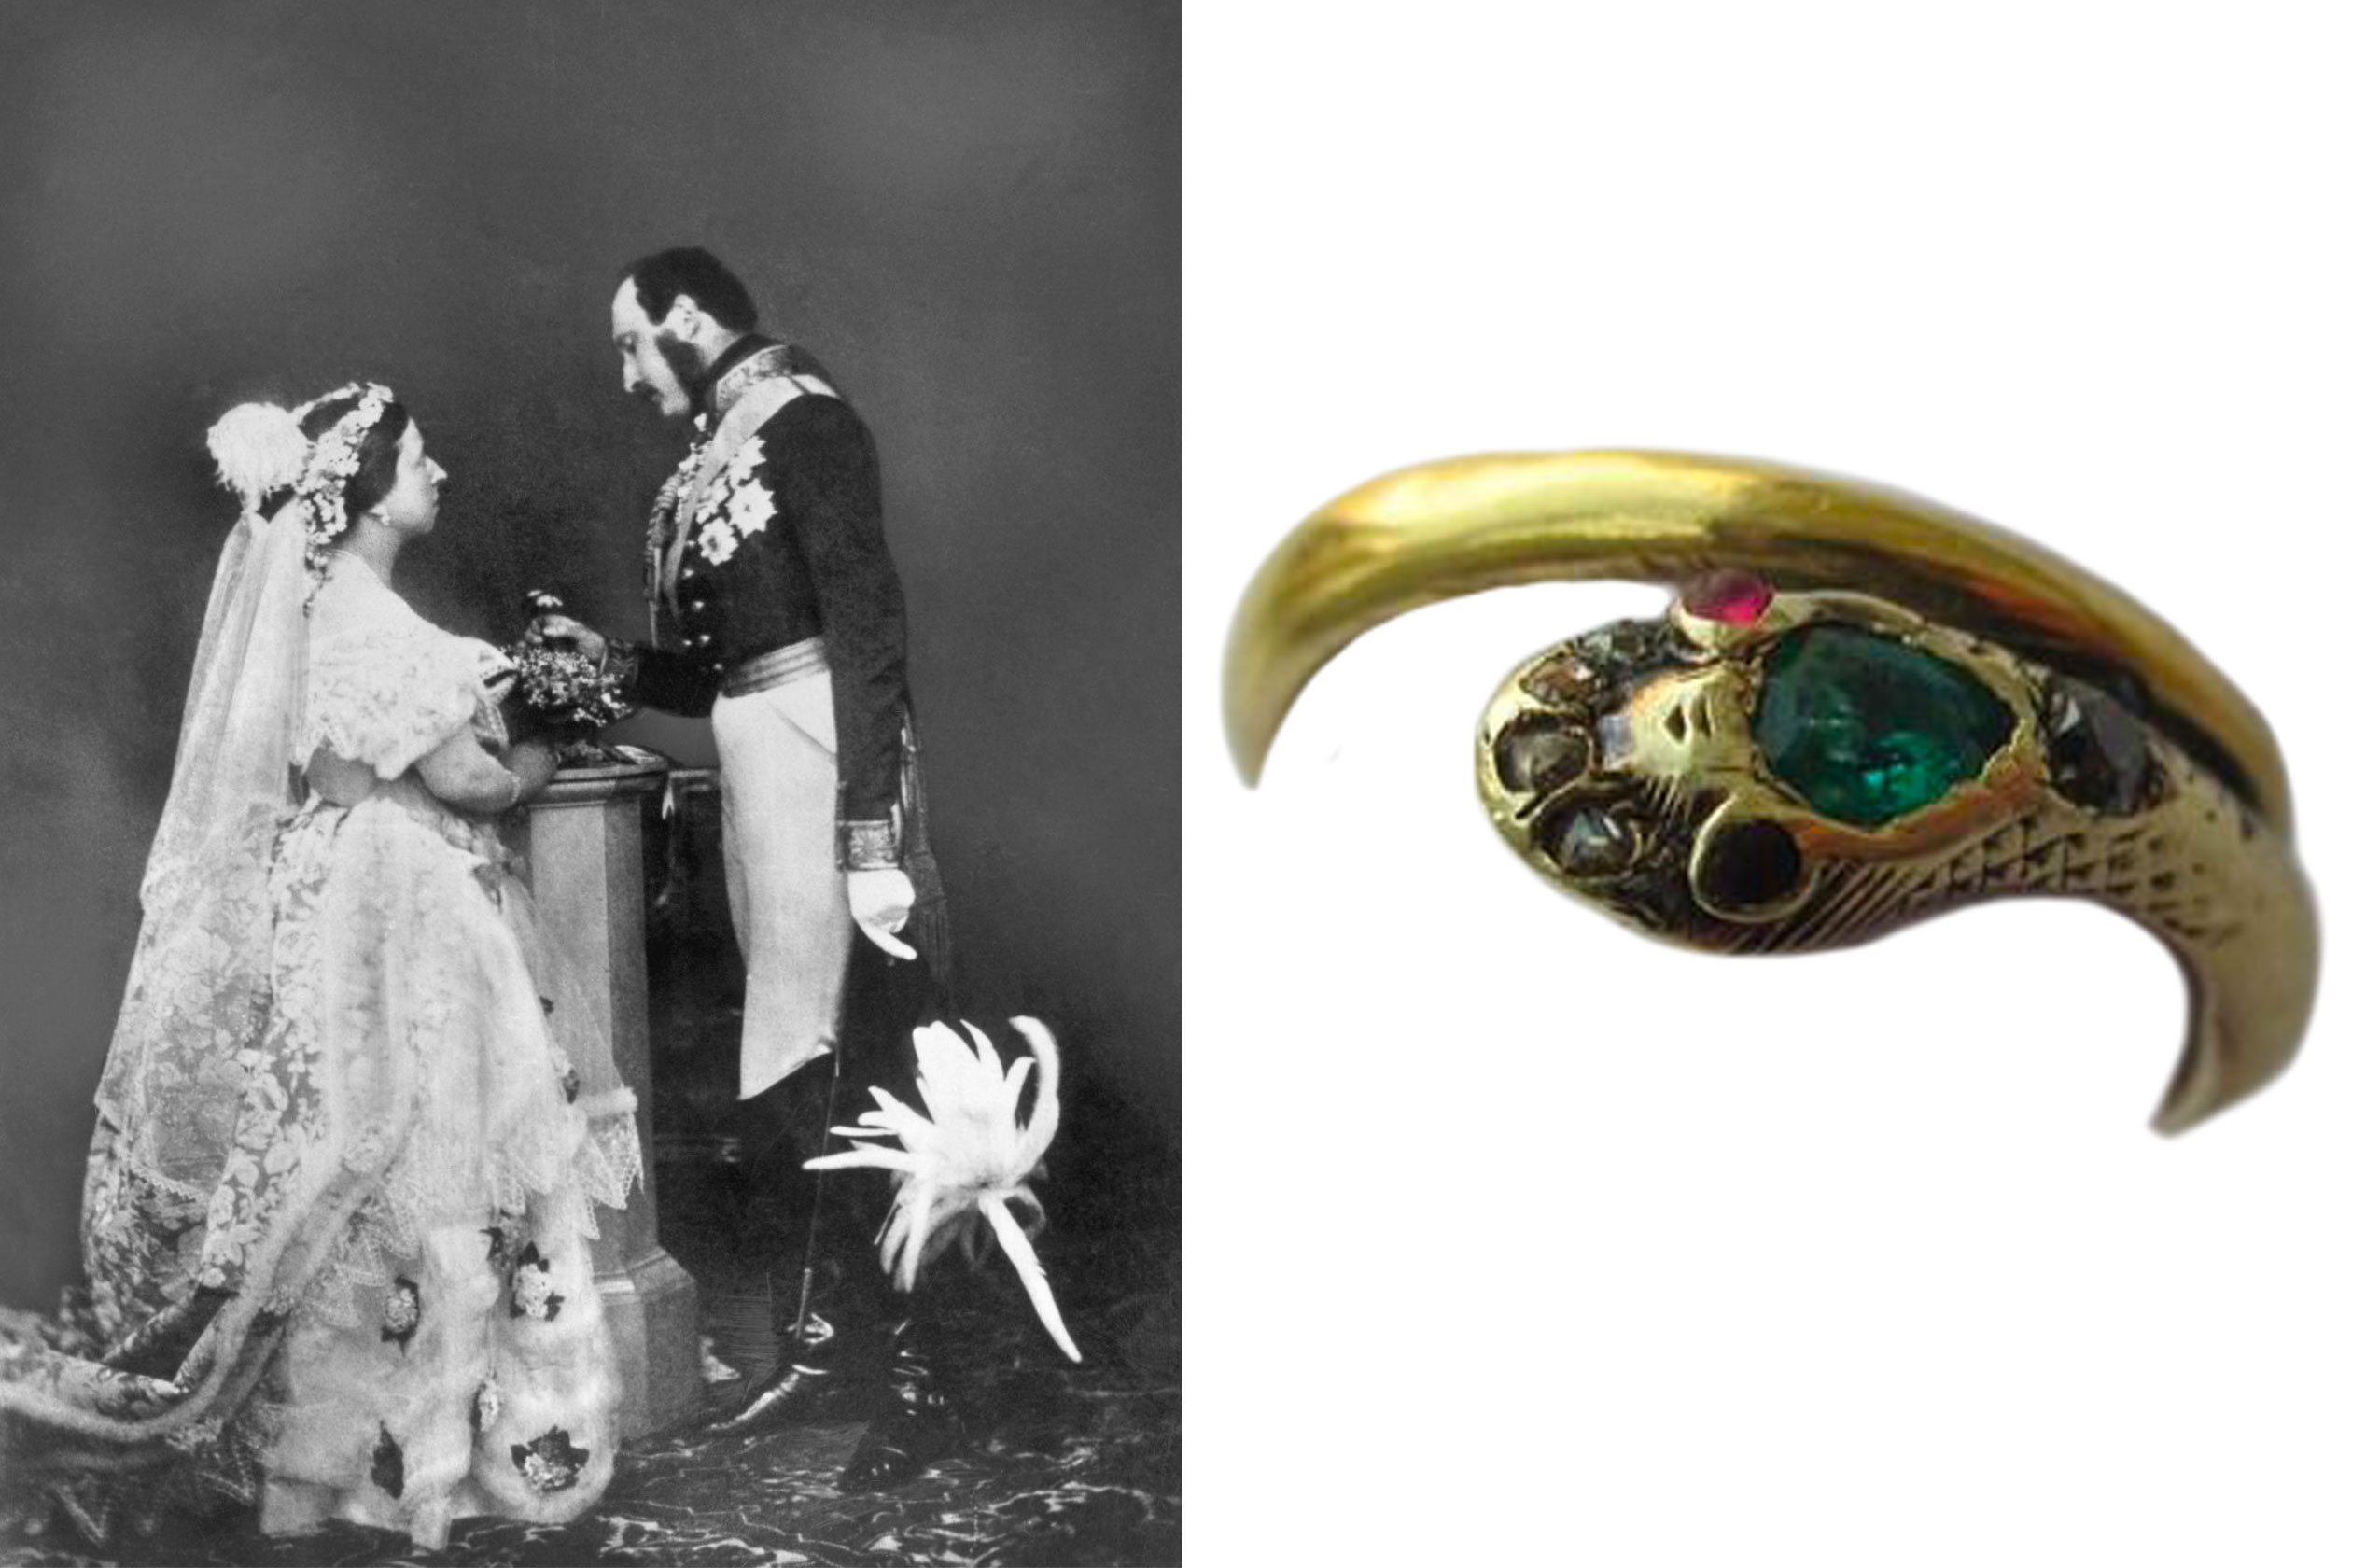 Queen Victoria's snake ring